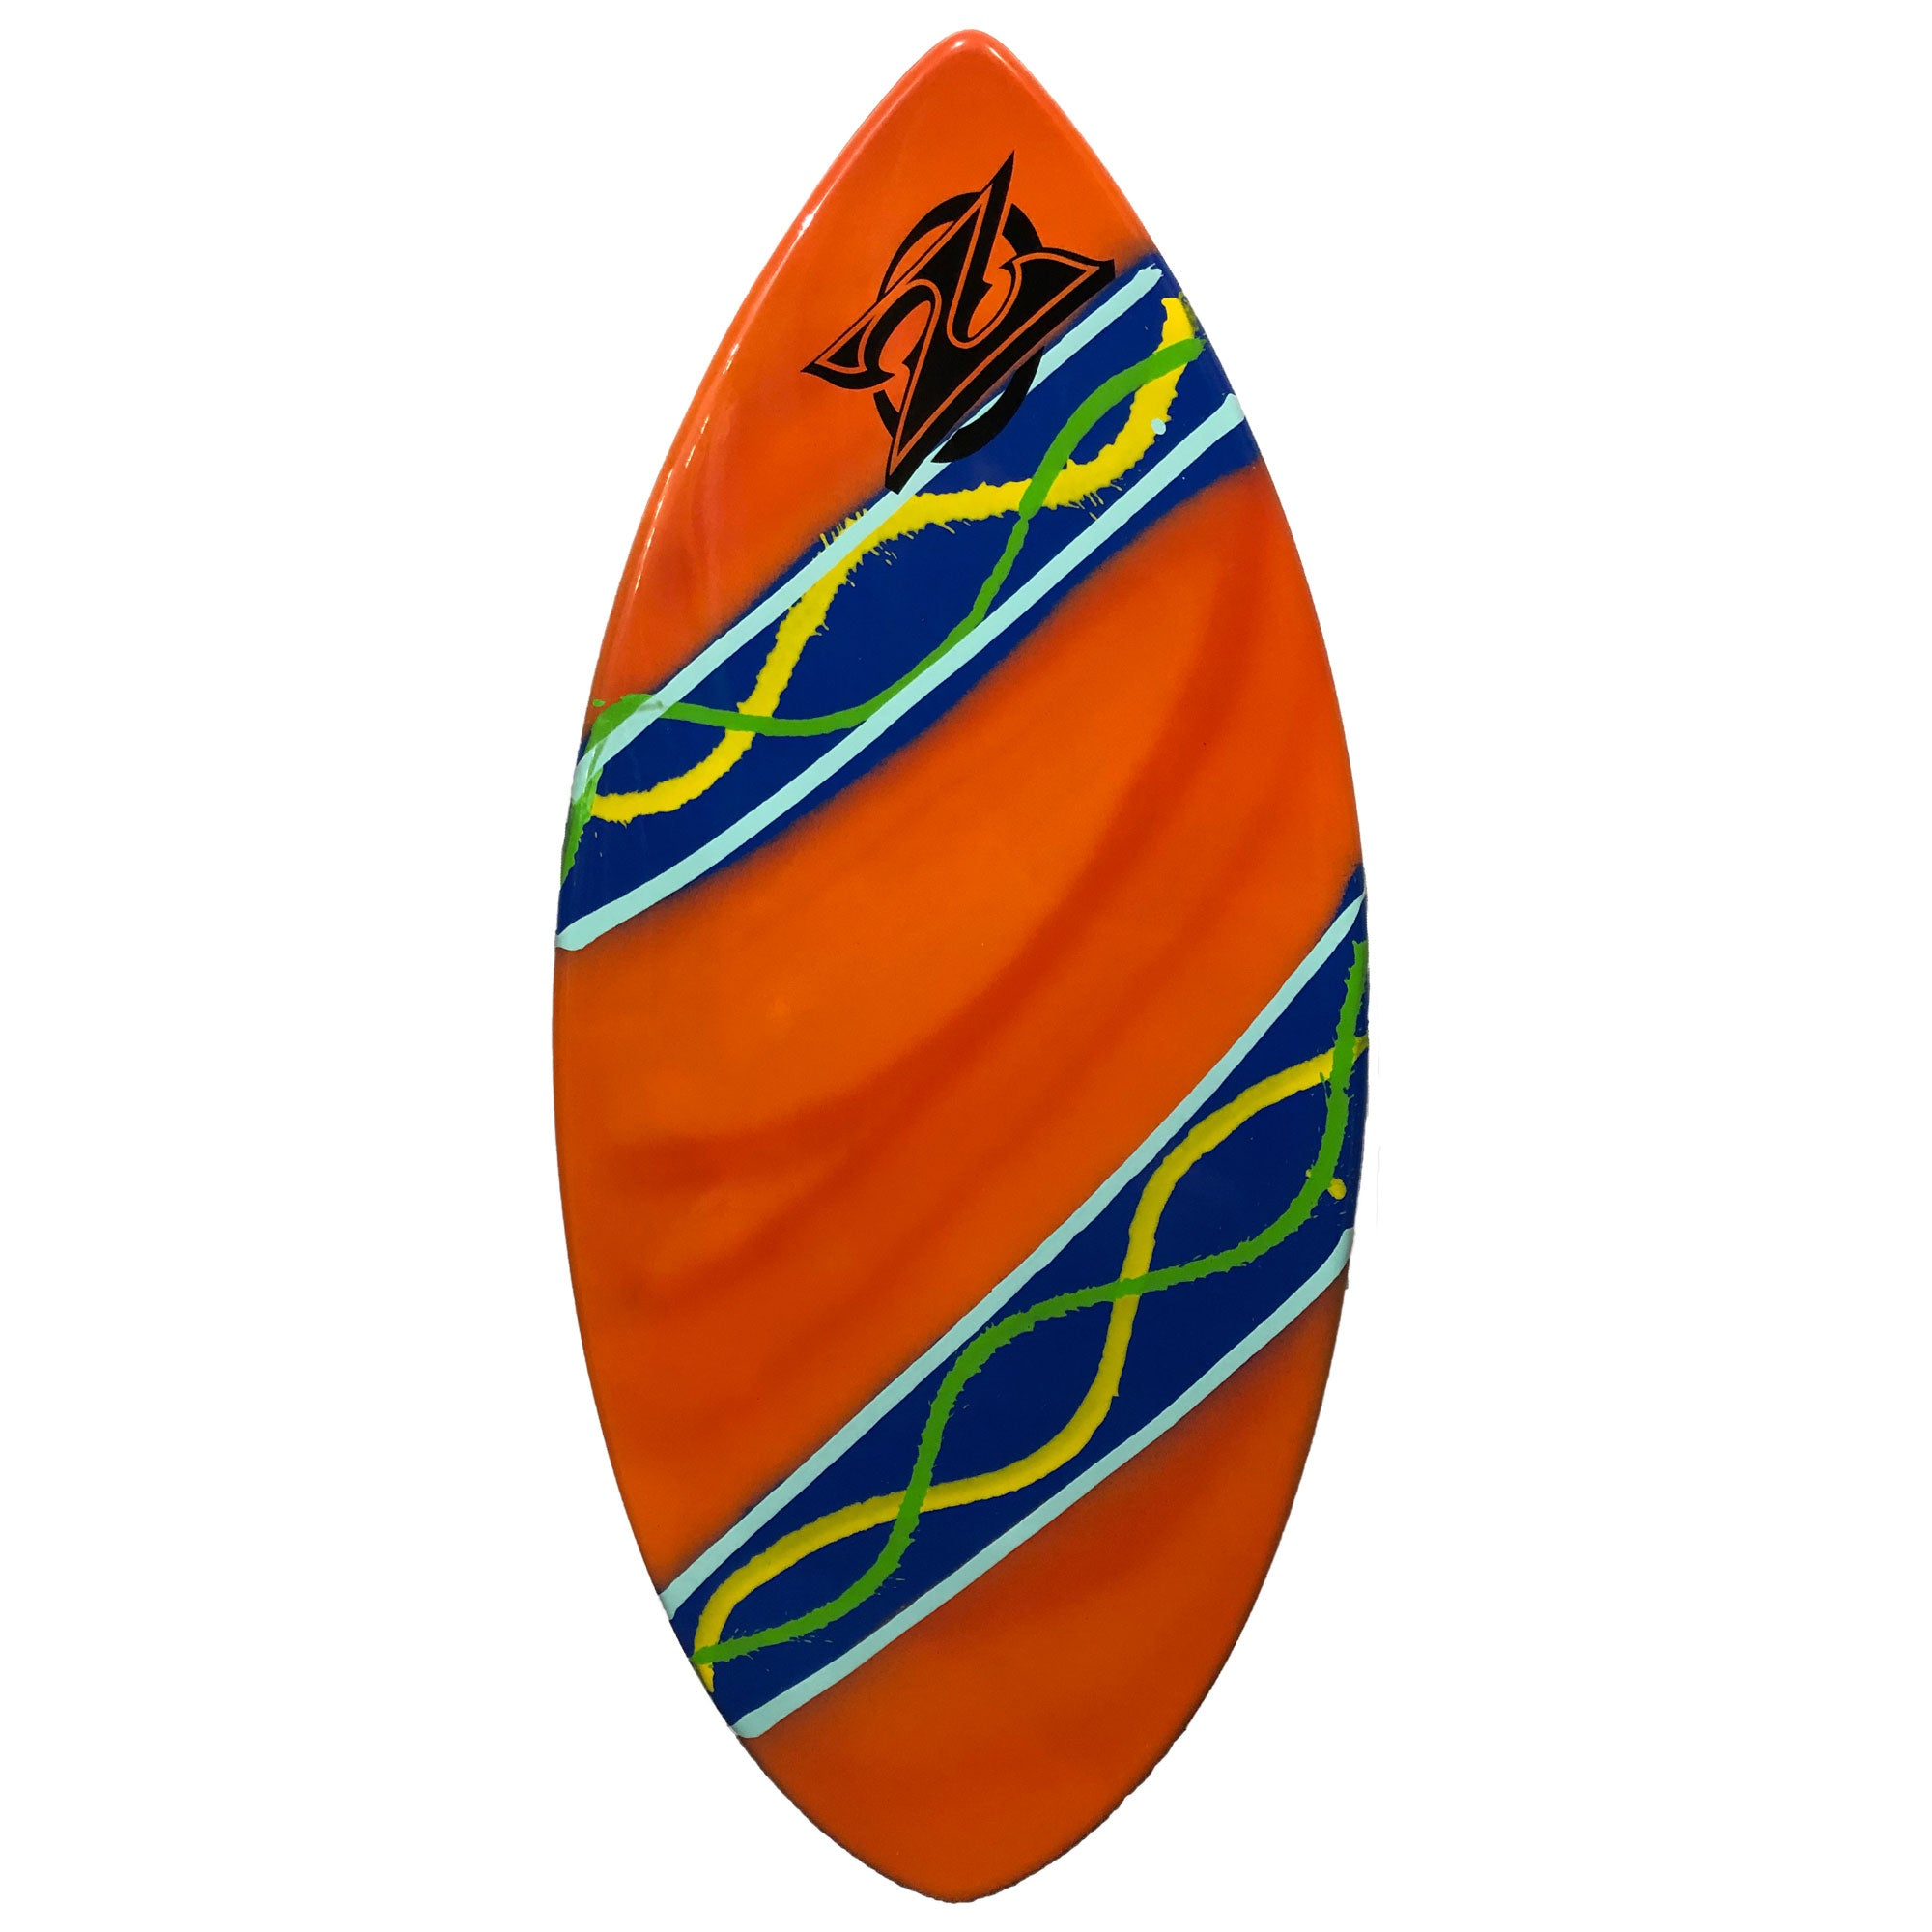 "Zap Wedge 45"" Skimboard - Orange w/ Blue Stripes"